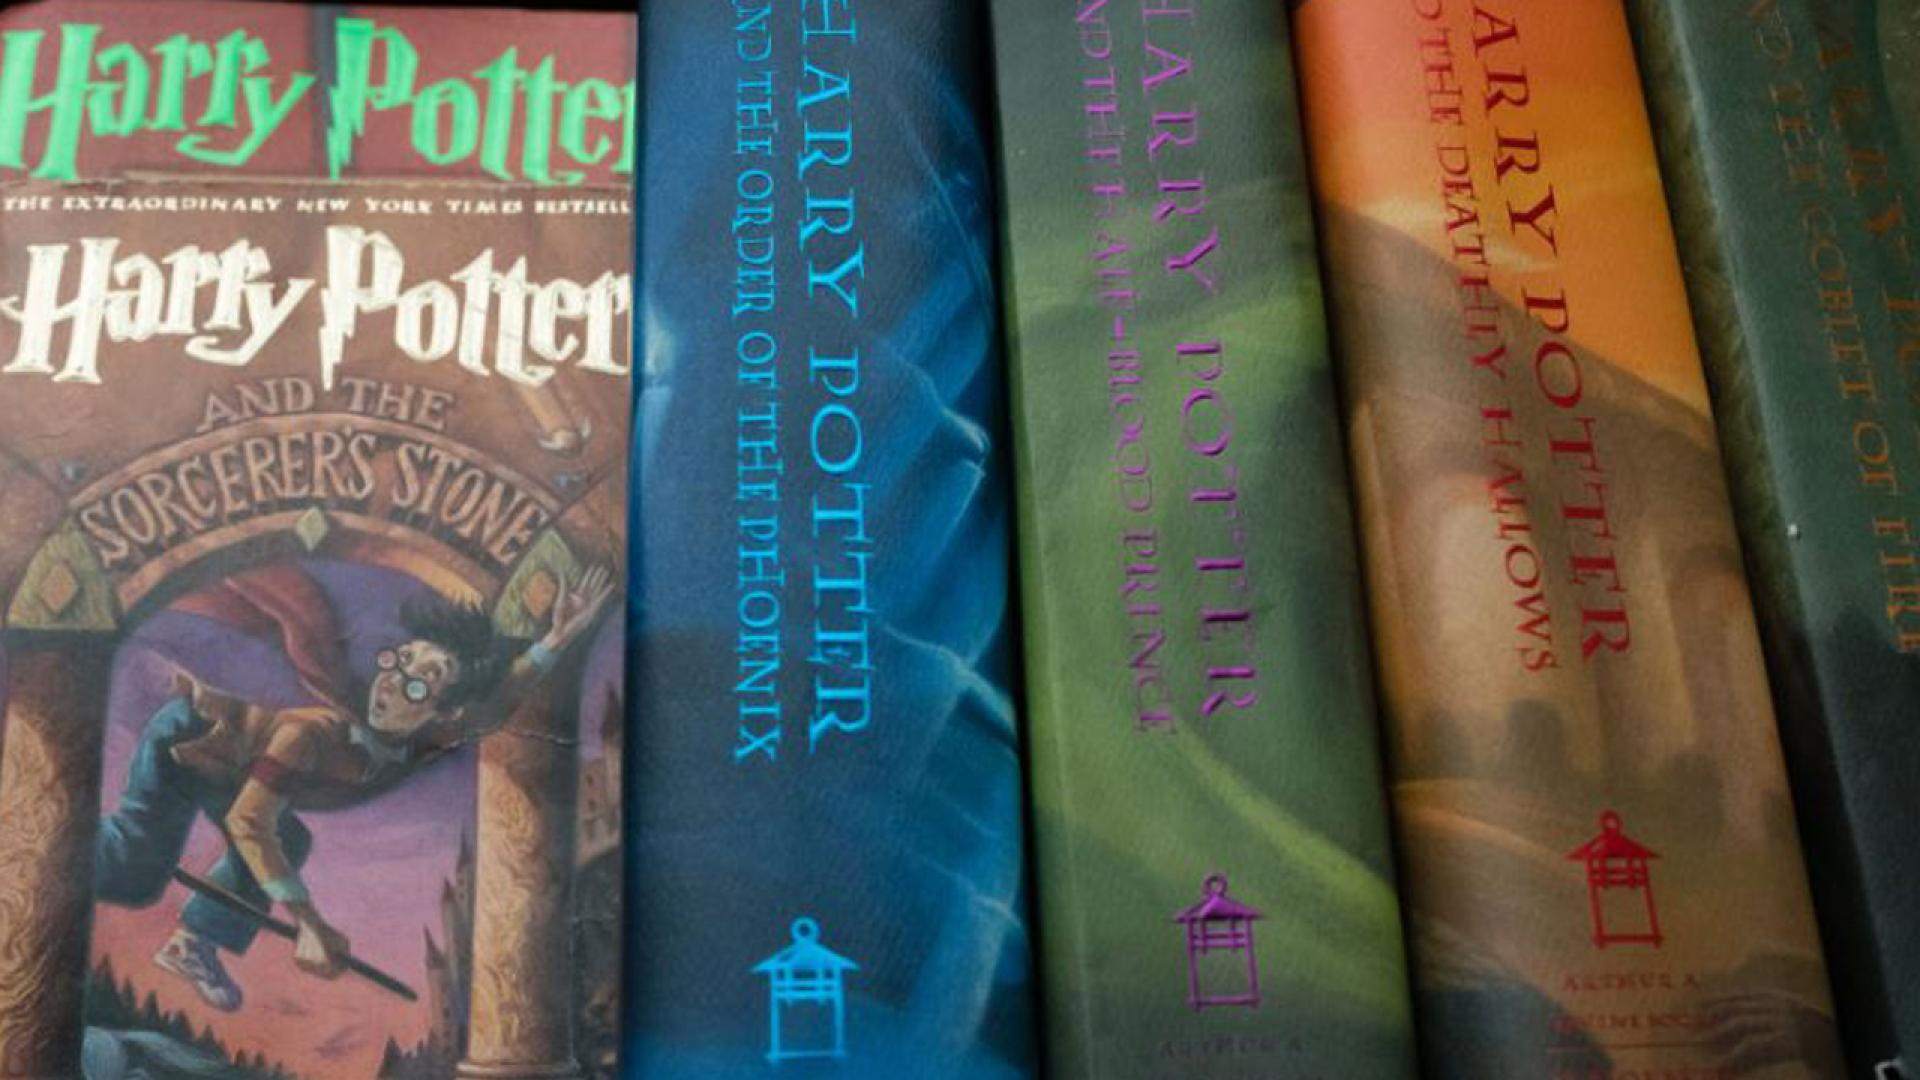 A Catholic priest has banned Harry Potter books at a school library.